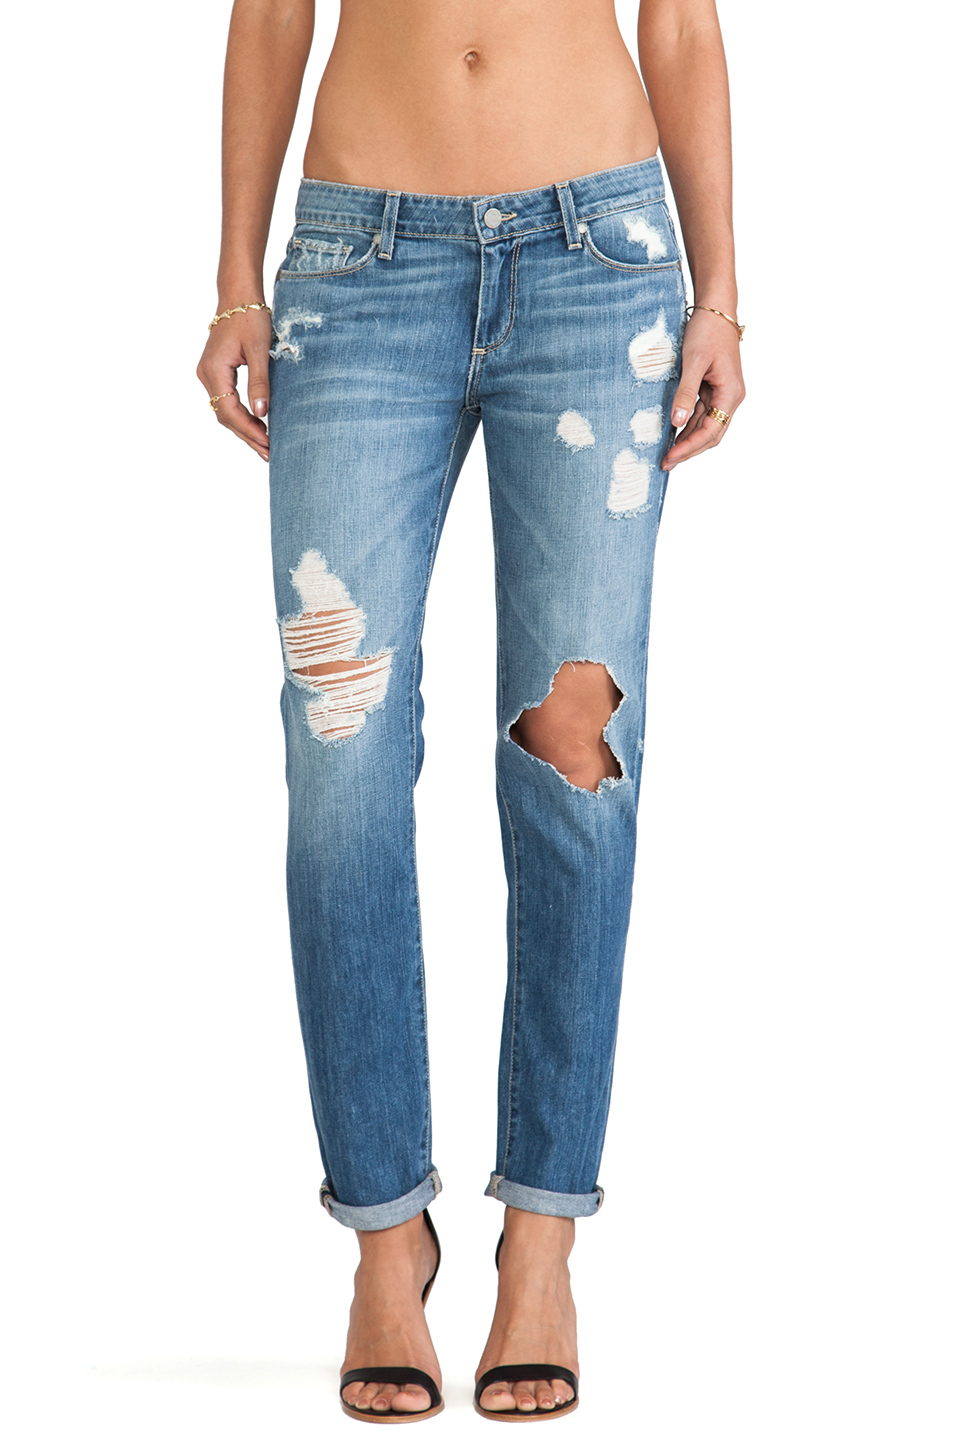 Paige Denim Jimmy Jimmy Skinny in Clifton Destructed | REVOLVE